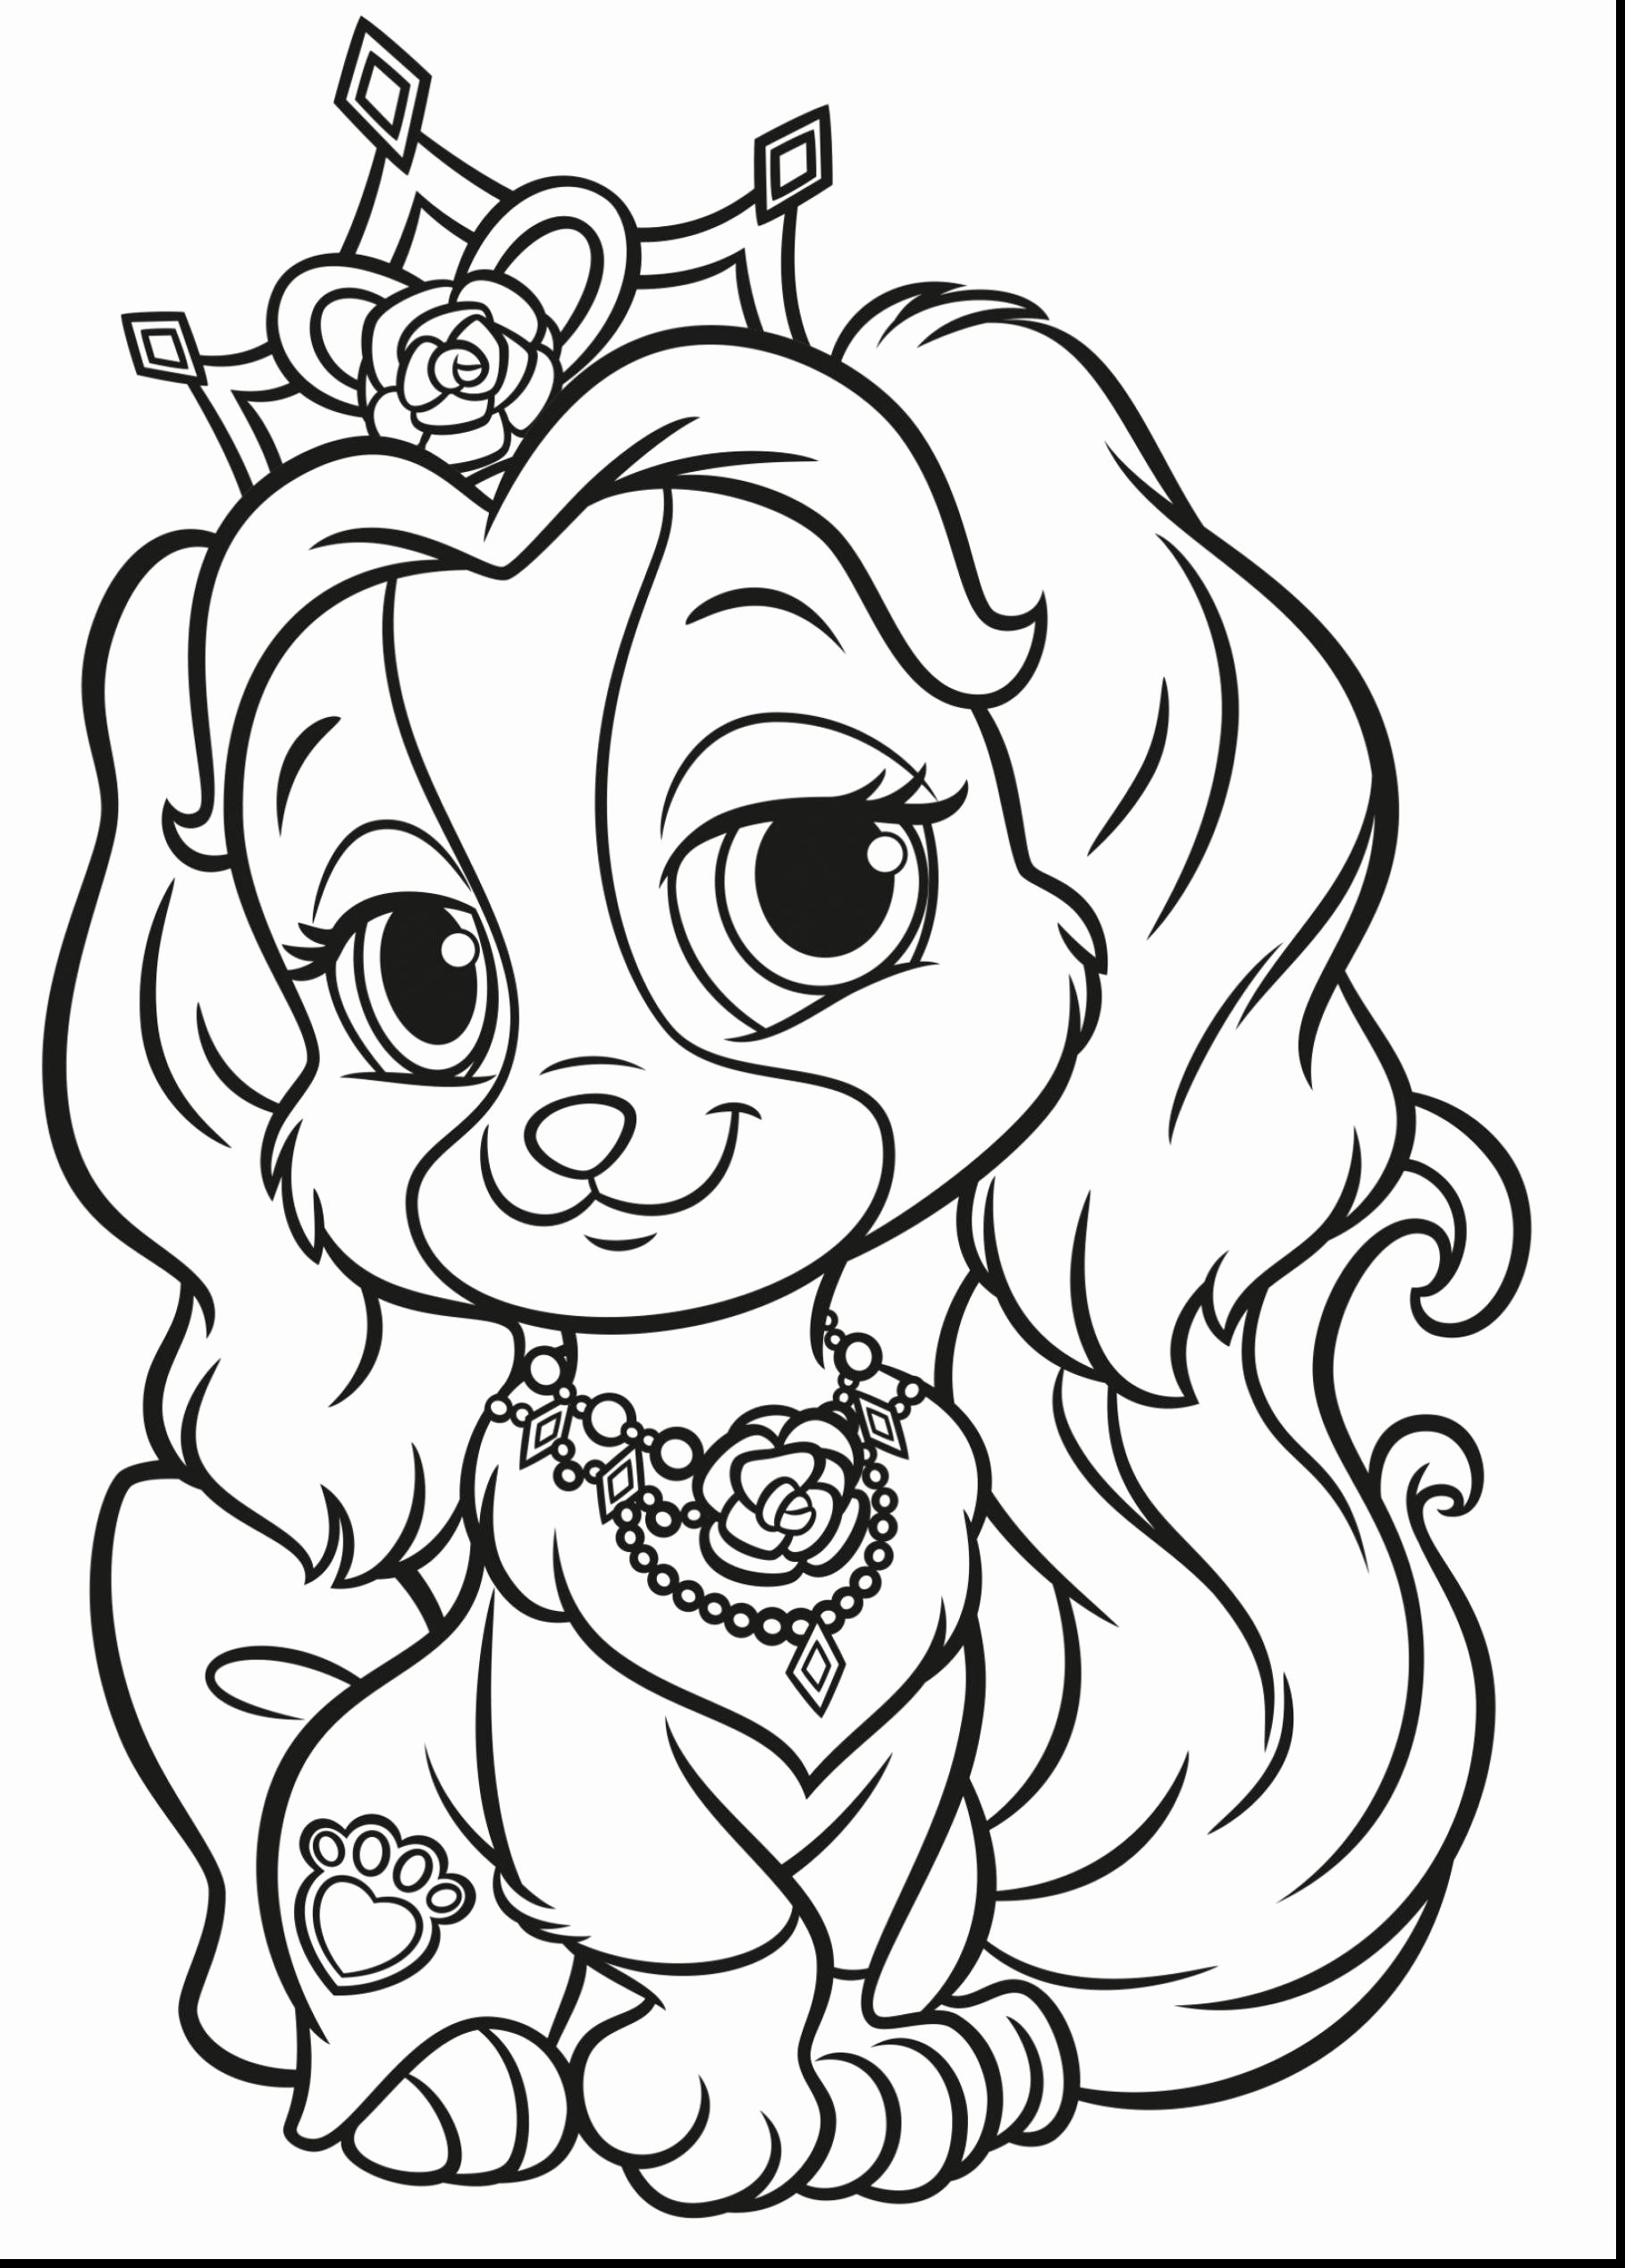 Puppy Princess Coloring Pages For Kids Princess Coloring Pages Dog Coloring Page Puppy Coloring Pages